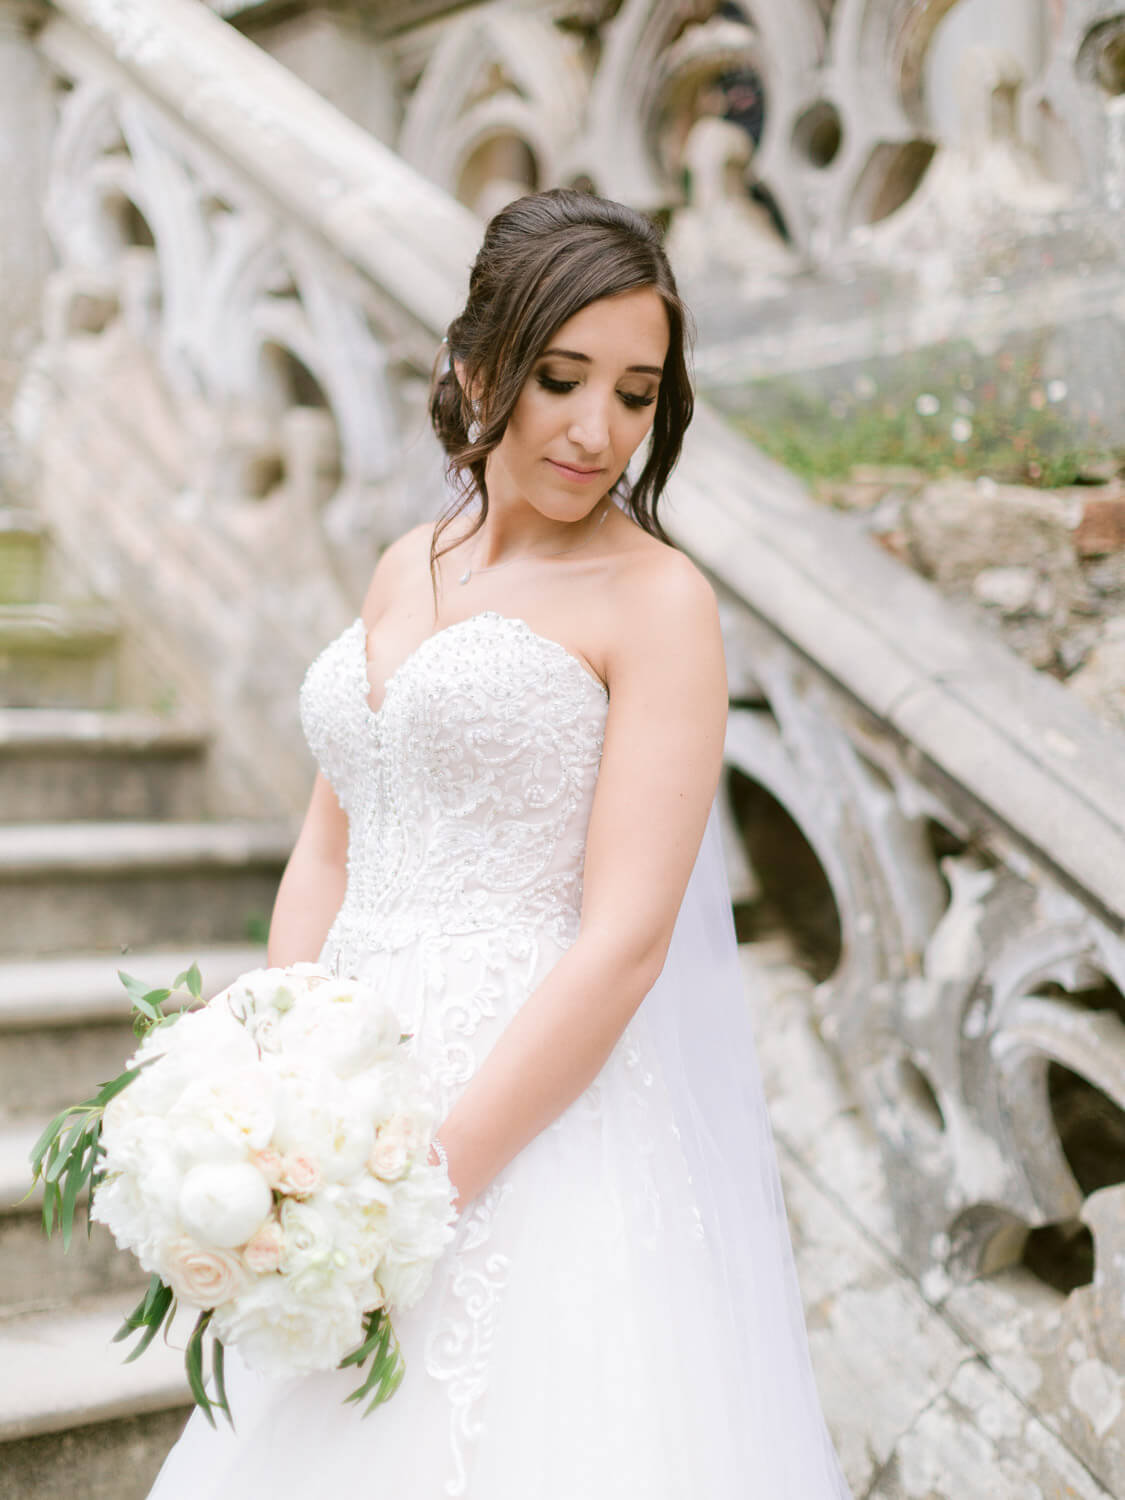 beautiful bride portrait at magnificent Sintra wedding venue by Portugal Wedding Photographer